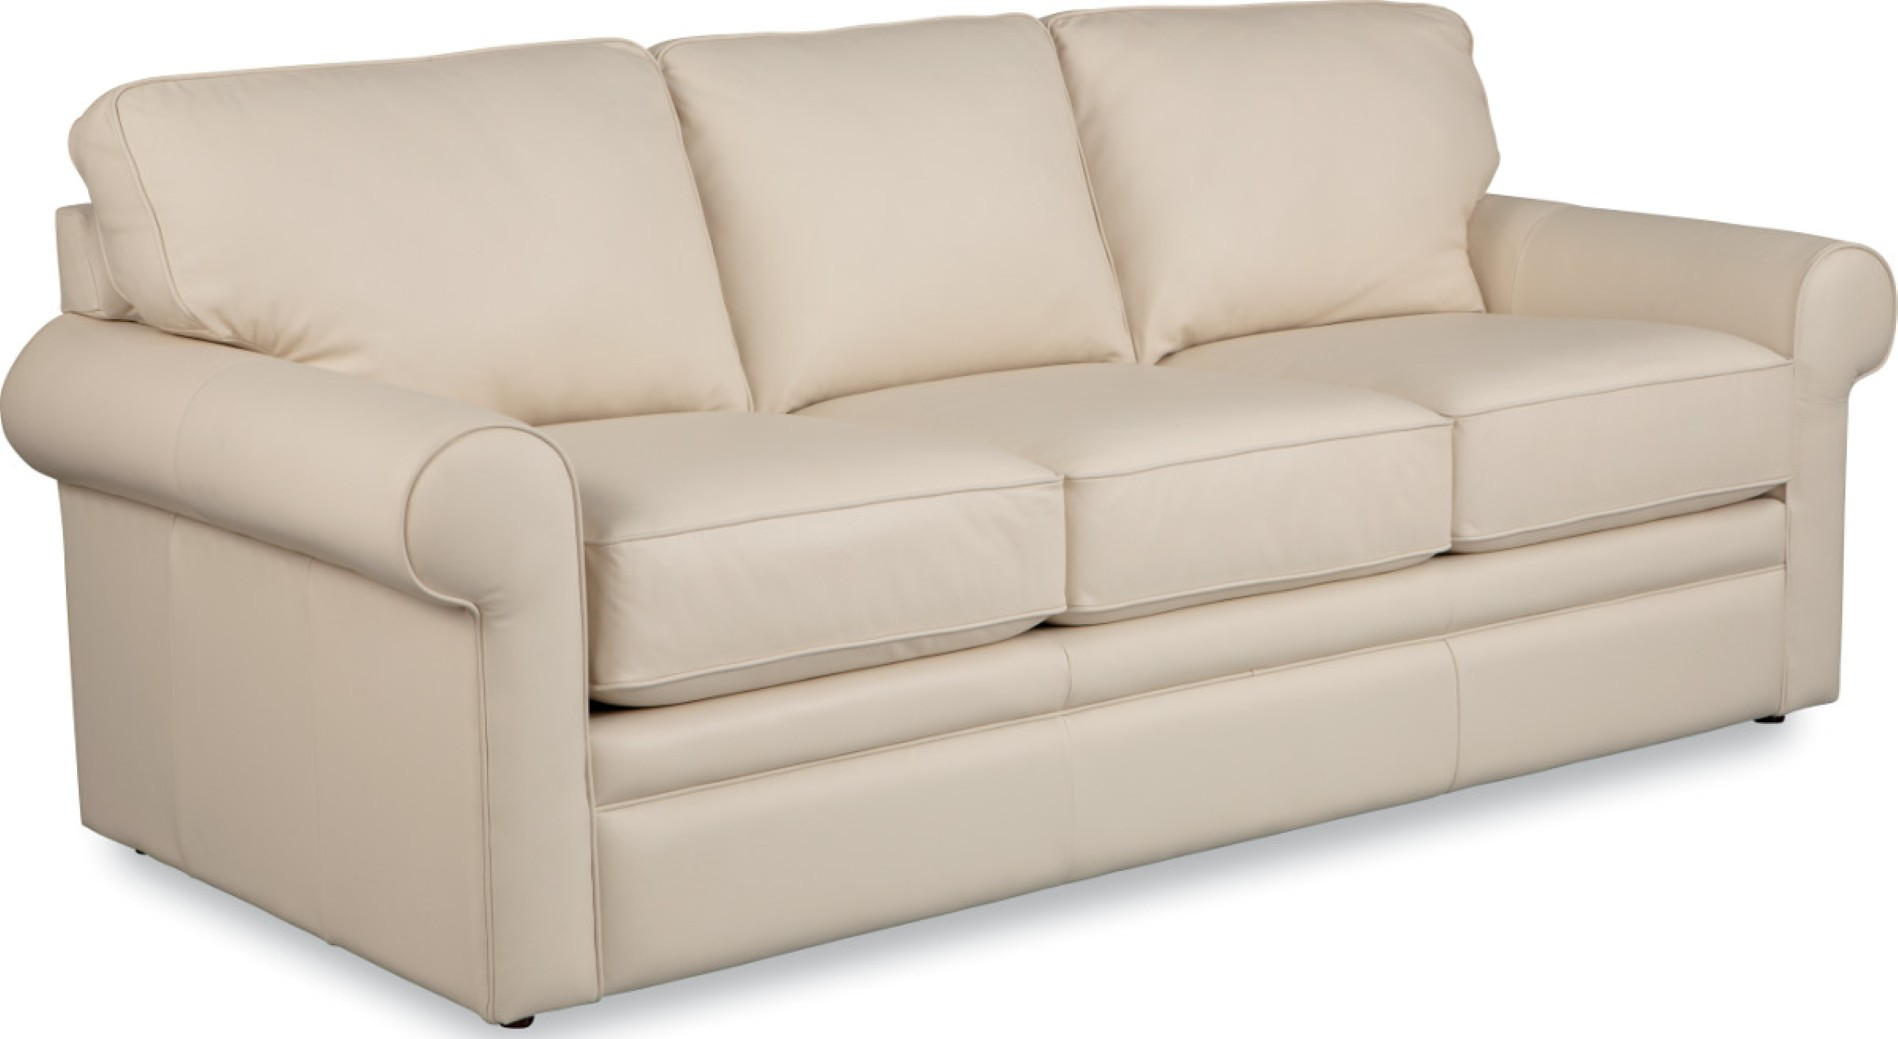 la z boy collins sofa reviews small curved corner town and country furniture